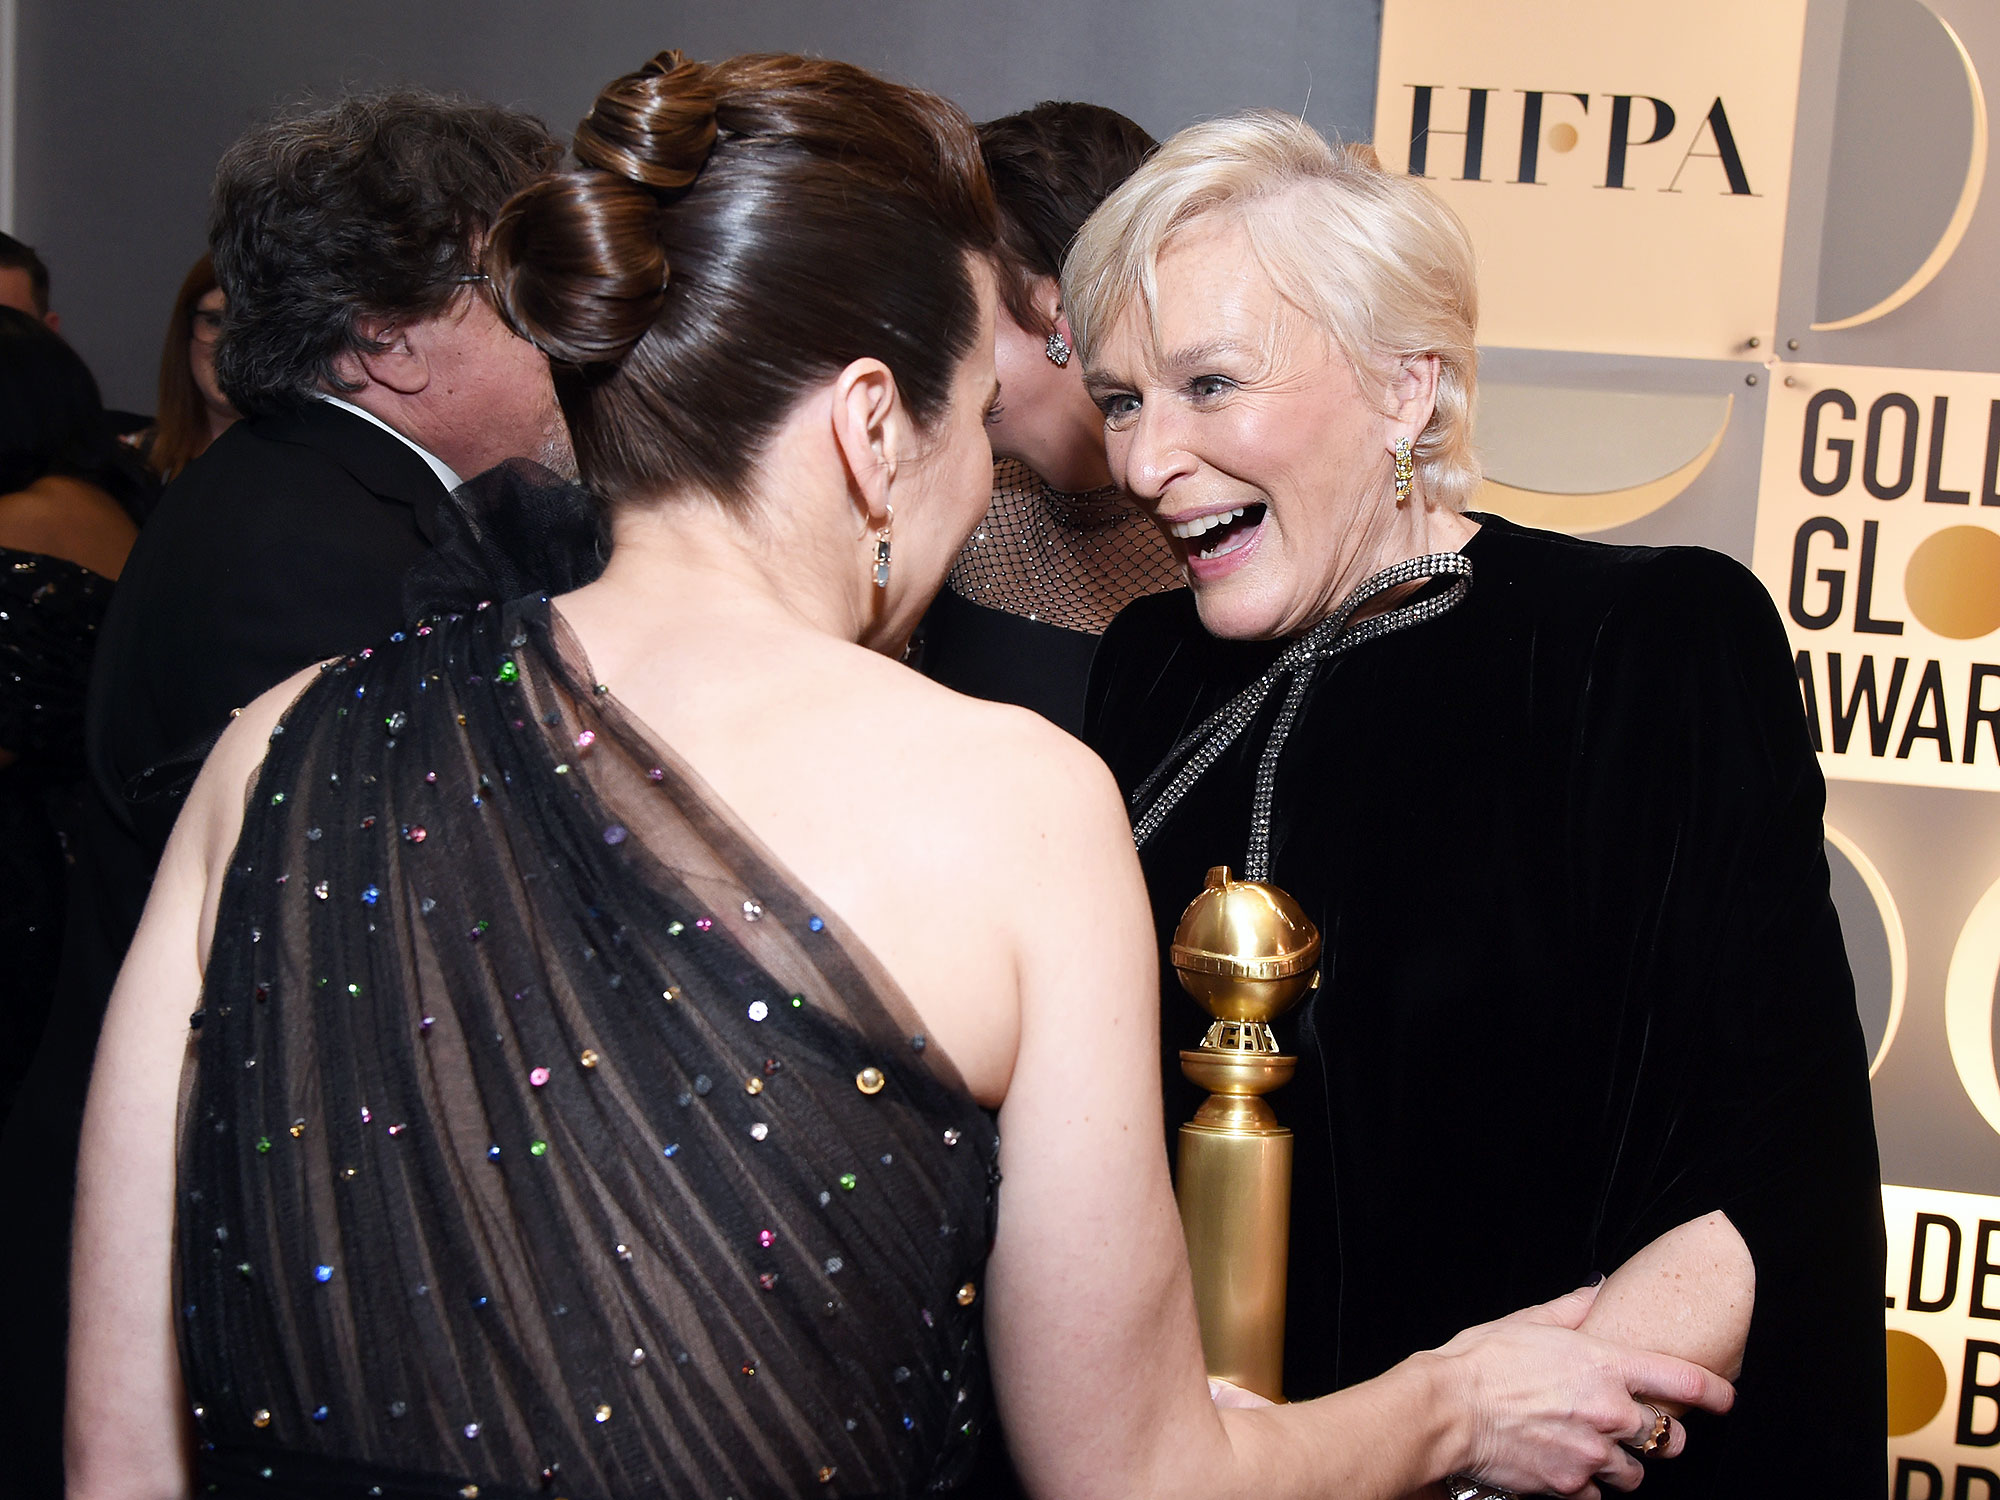 Inside Golden Globes 2019 Linda Cardellini Glenn Close - Linda Cardellini took a moment to congratulate Glenn Close backstage after the Wife star won best actress in a drama film.